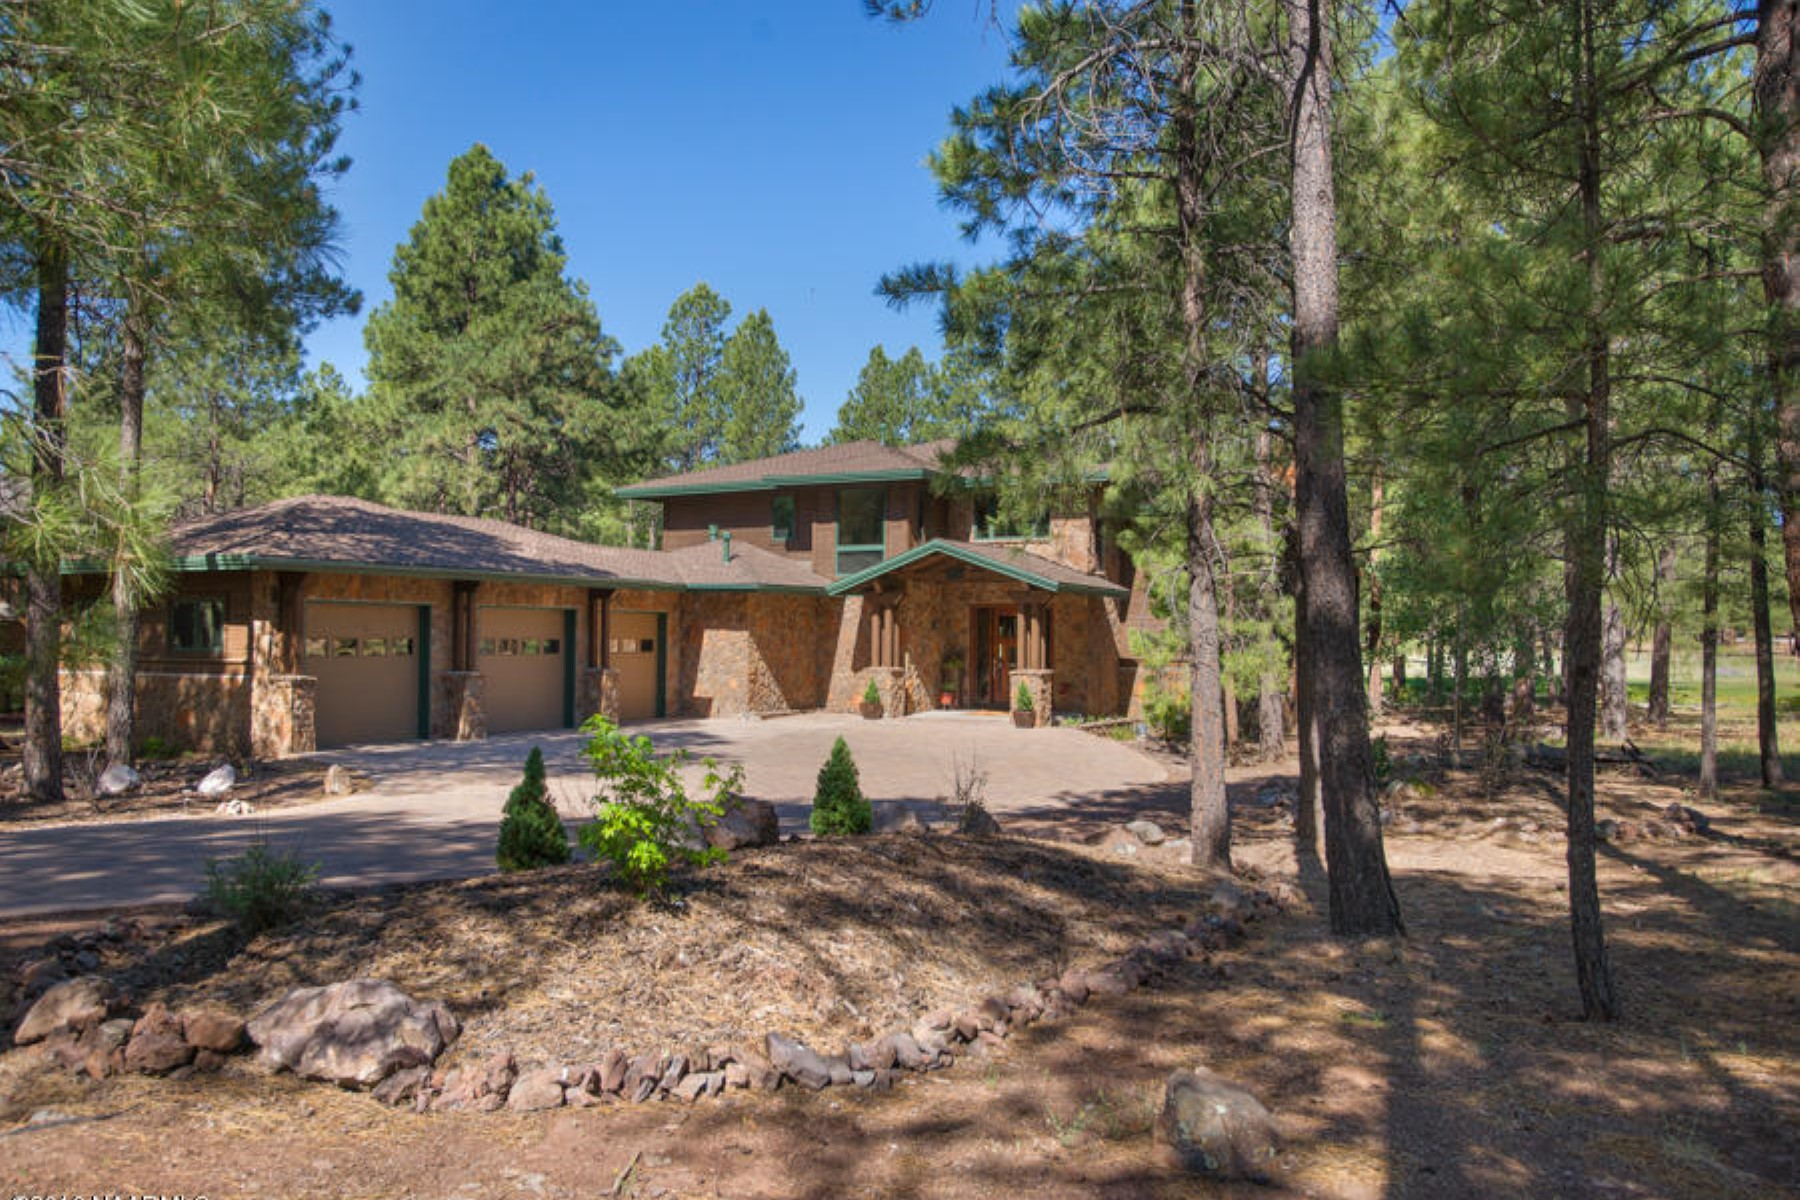 Maison unifamiliale pour l Vente à Lovely home on the popular 14th fairway of The Meadow course in Forest Highlands 1780-Fh727 Bessie Kidd Best Flagstaff, Arizona, 86005 États-Unis